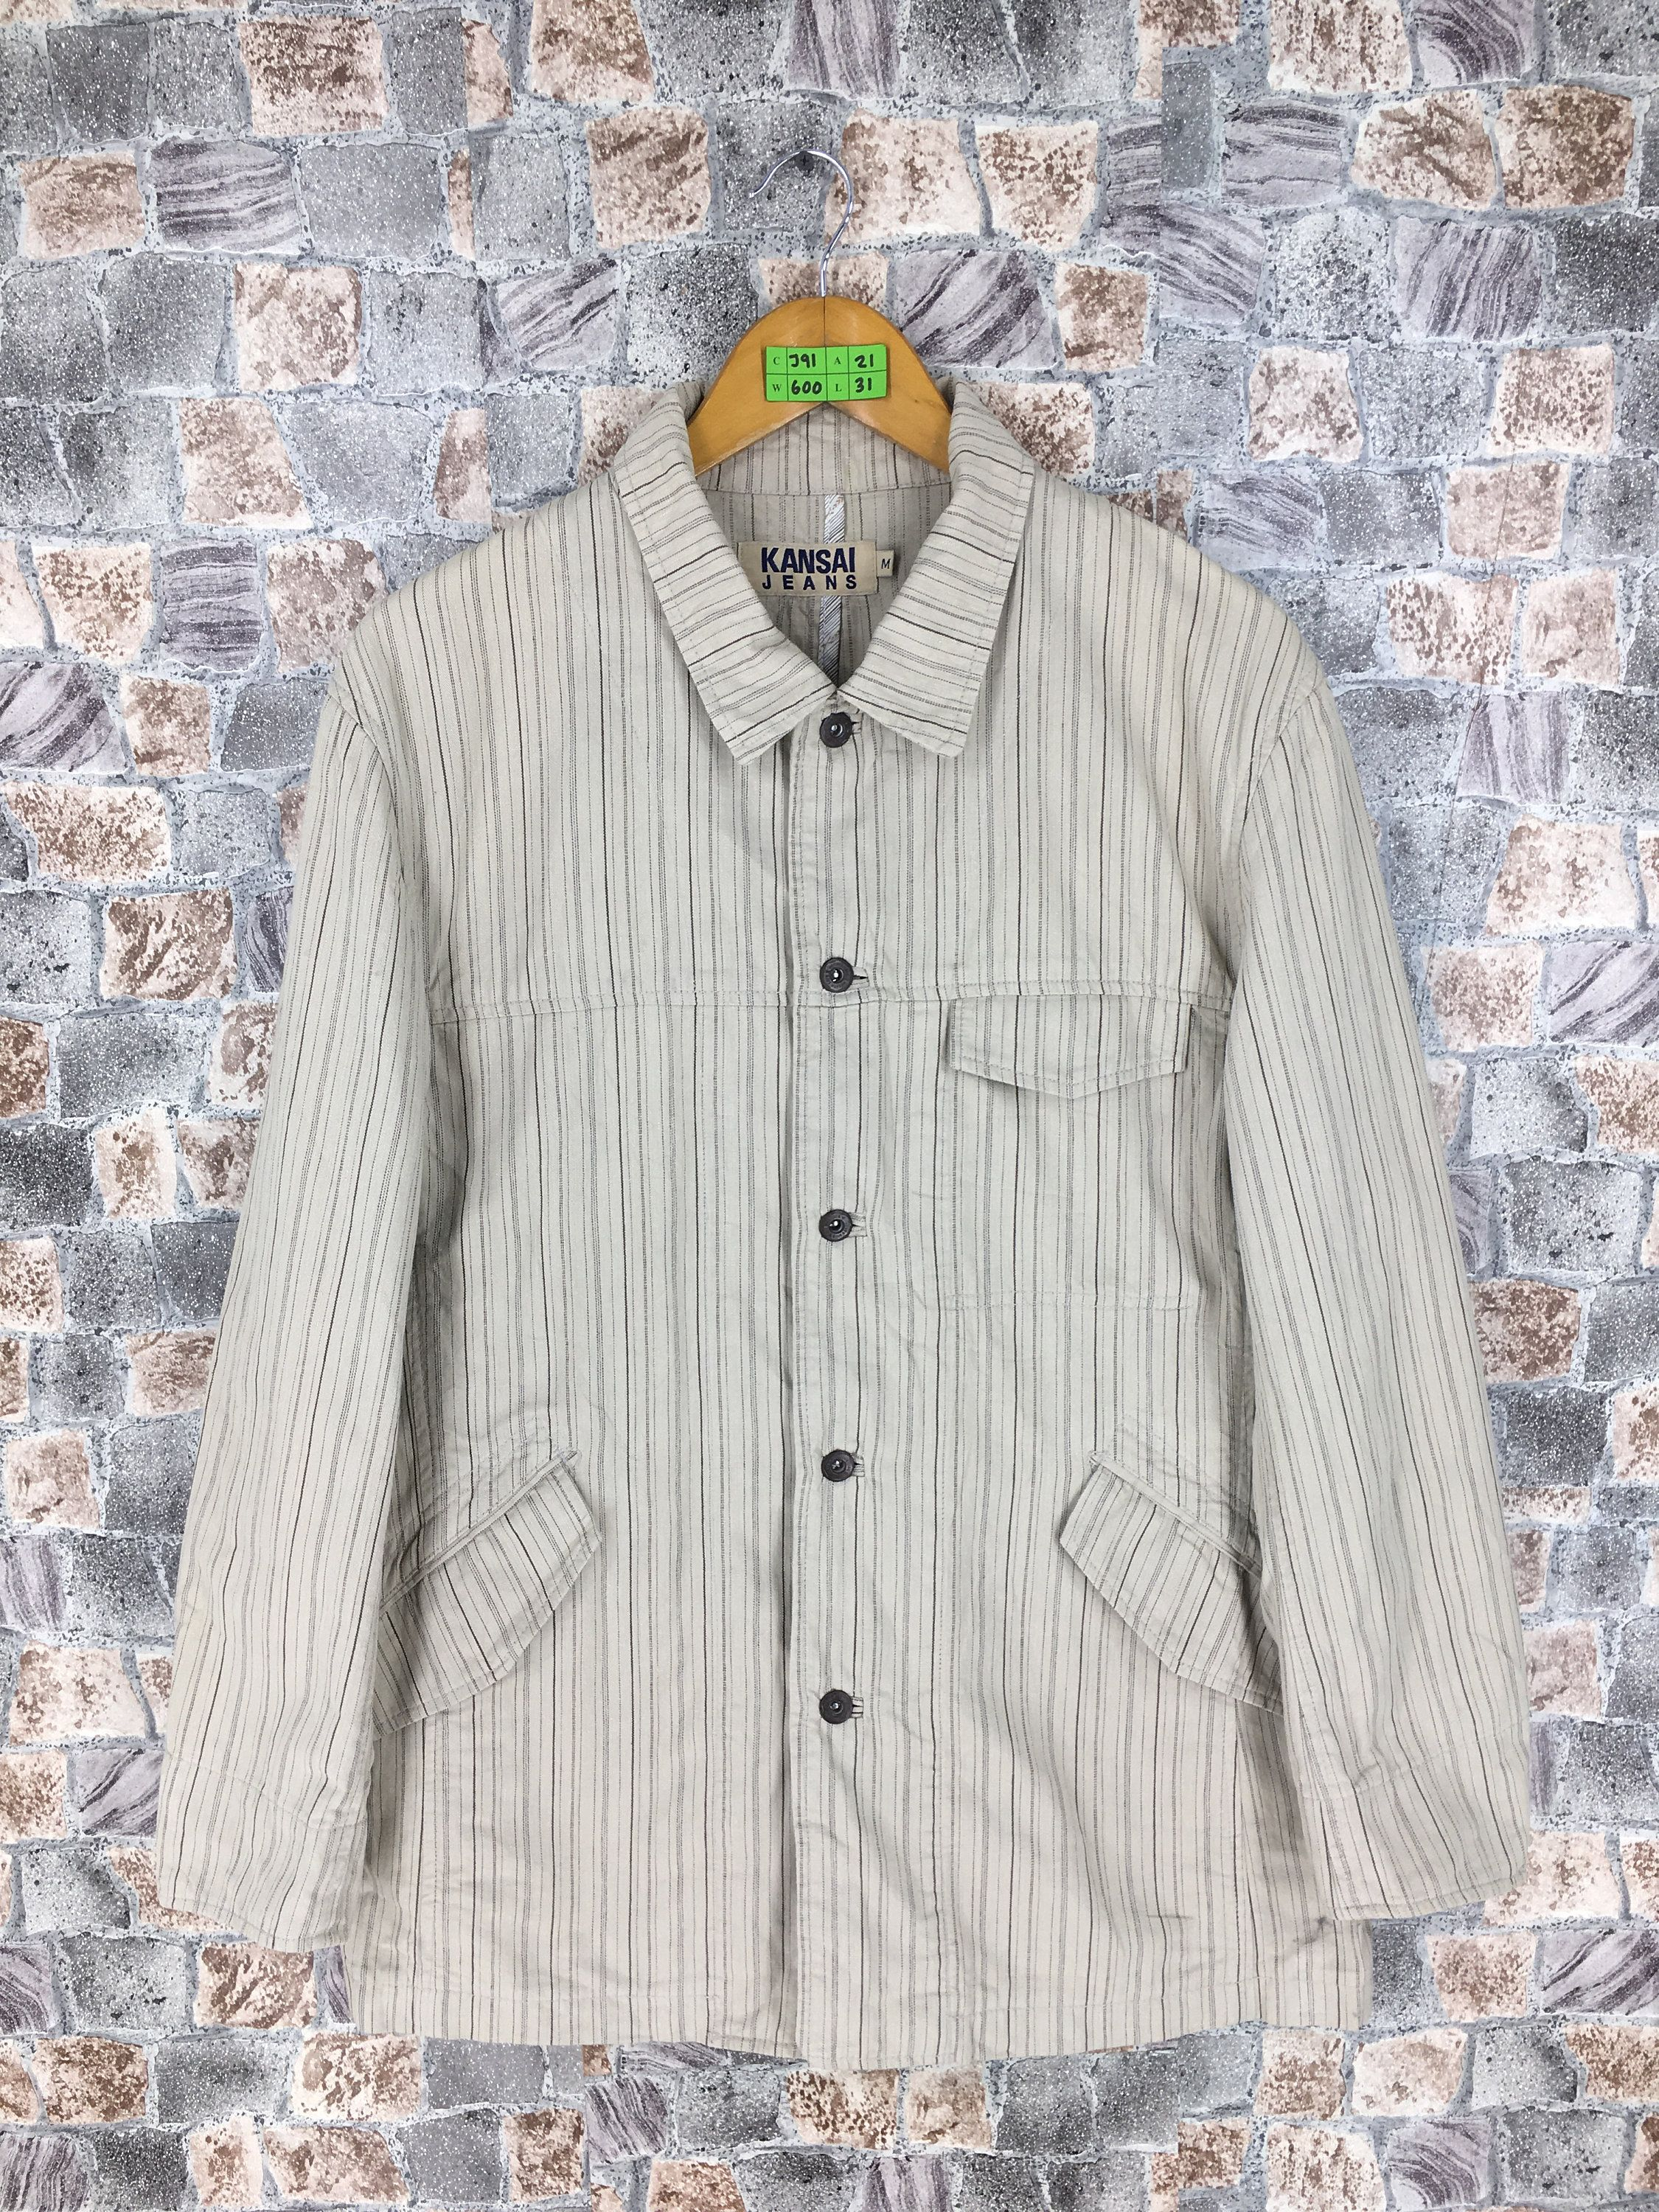 KANSAI Jeans Jacket Medium Vintage 90s Kansai Yamamoto Japan Striped Denim  Beige Jeans Jacket Japanese Designer f6e90086d